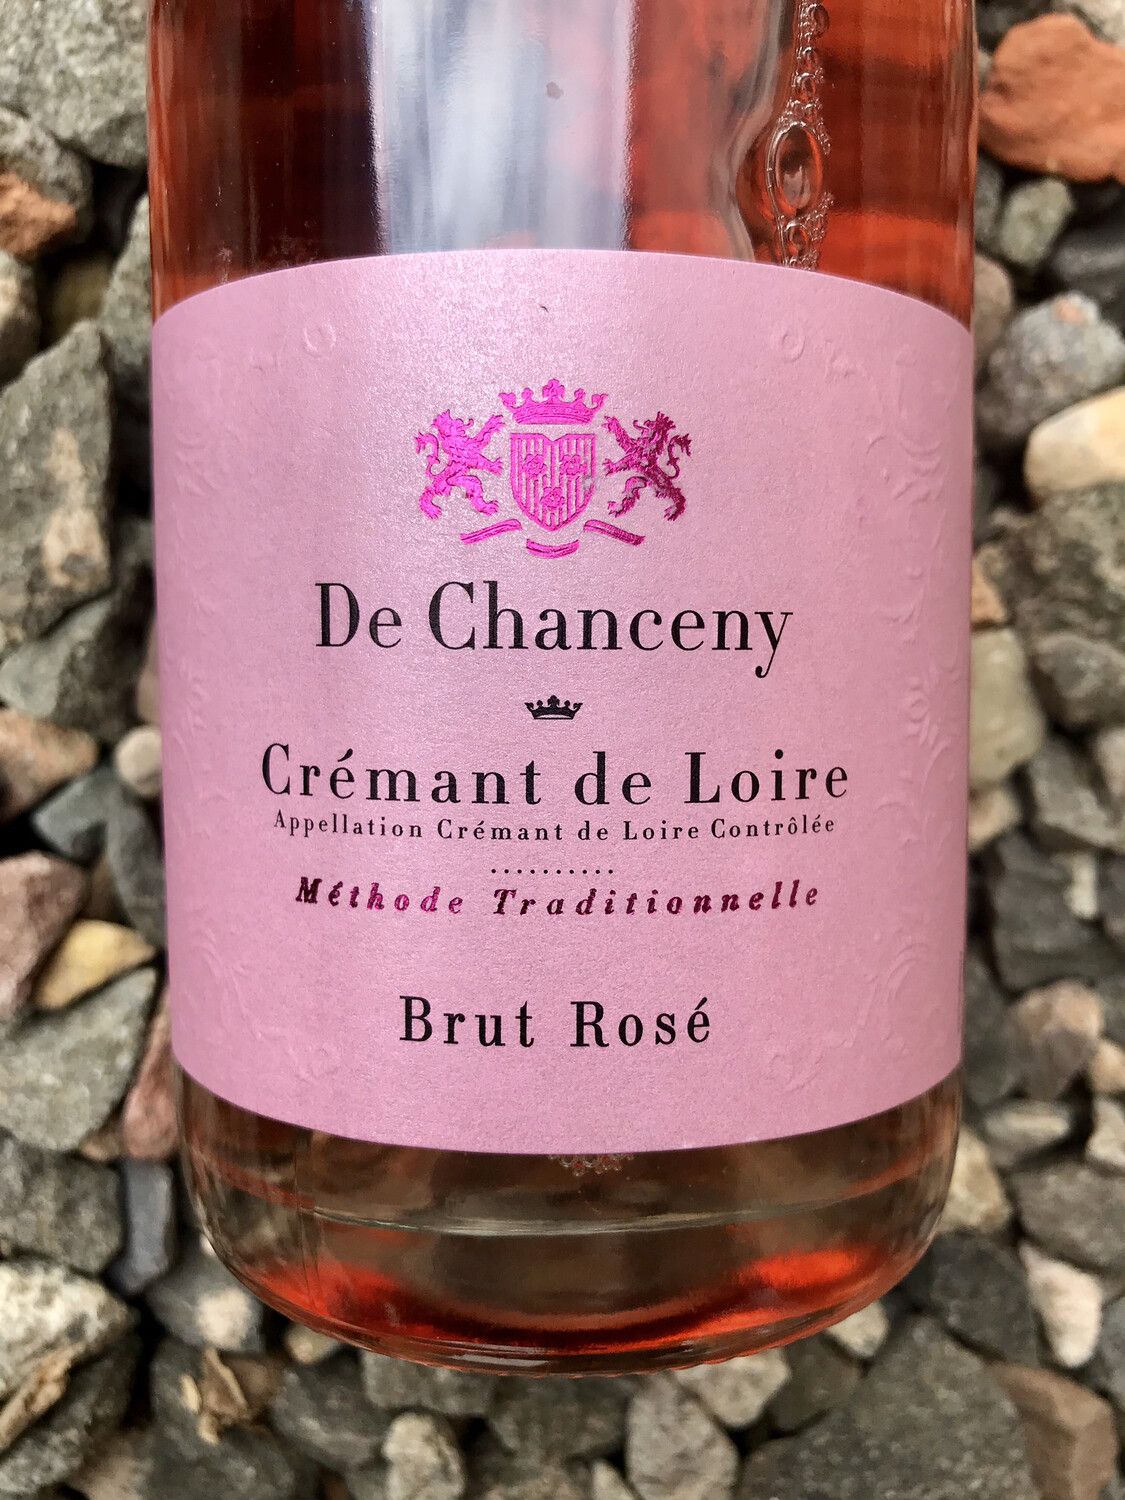 Cremant de Loire 'De Chanceny' Brut Rose NV